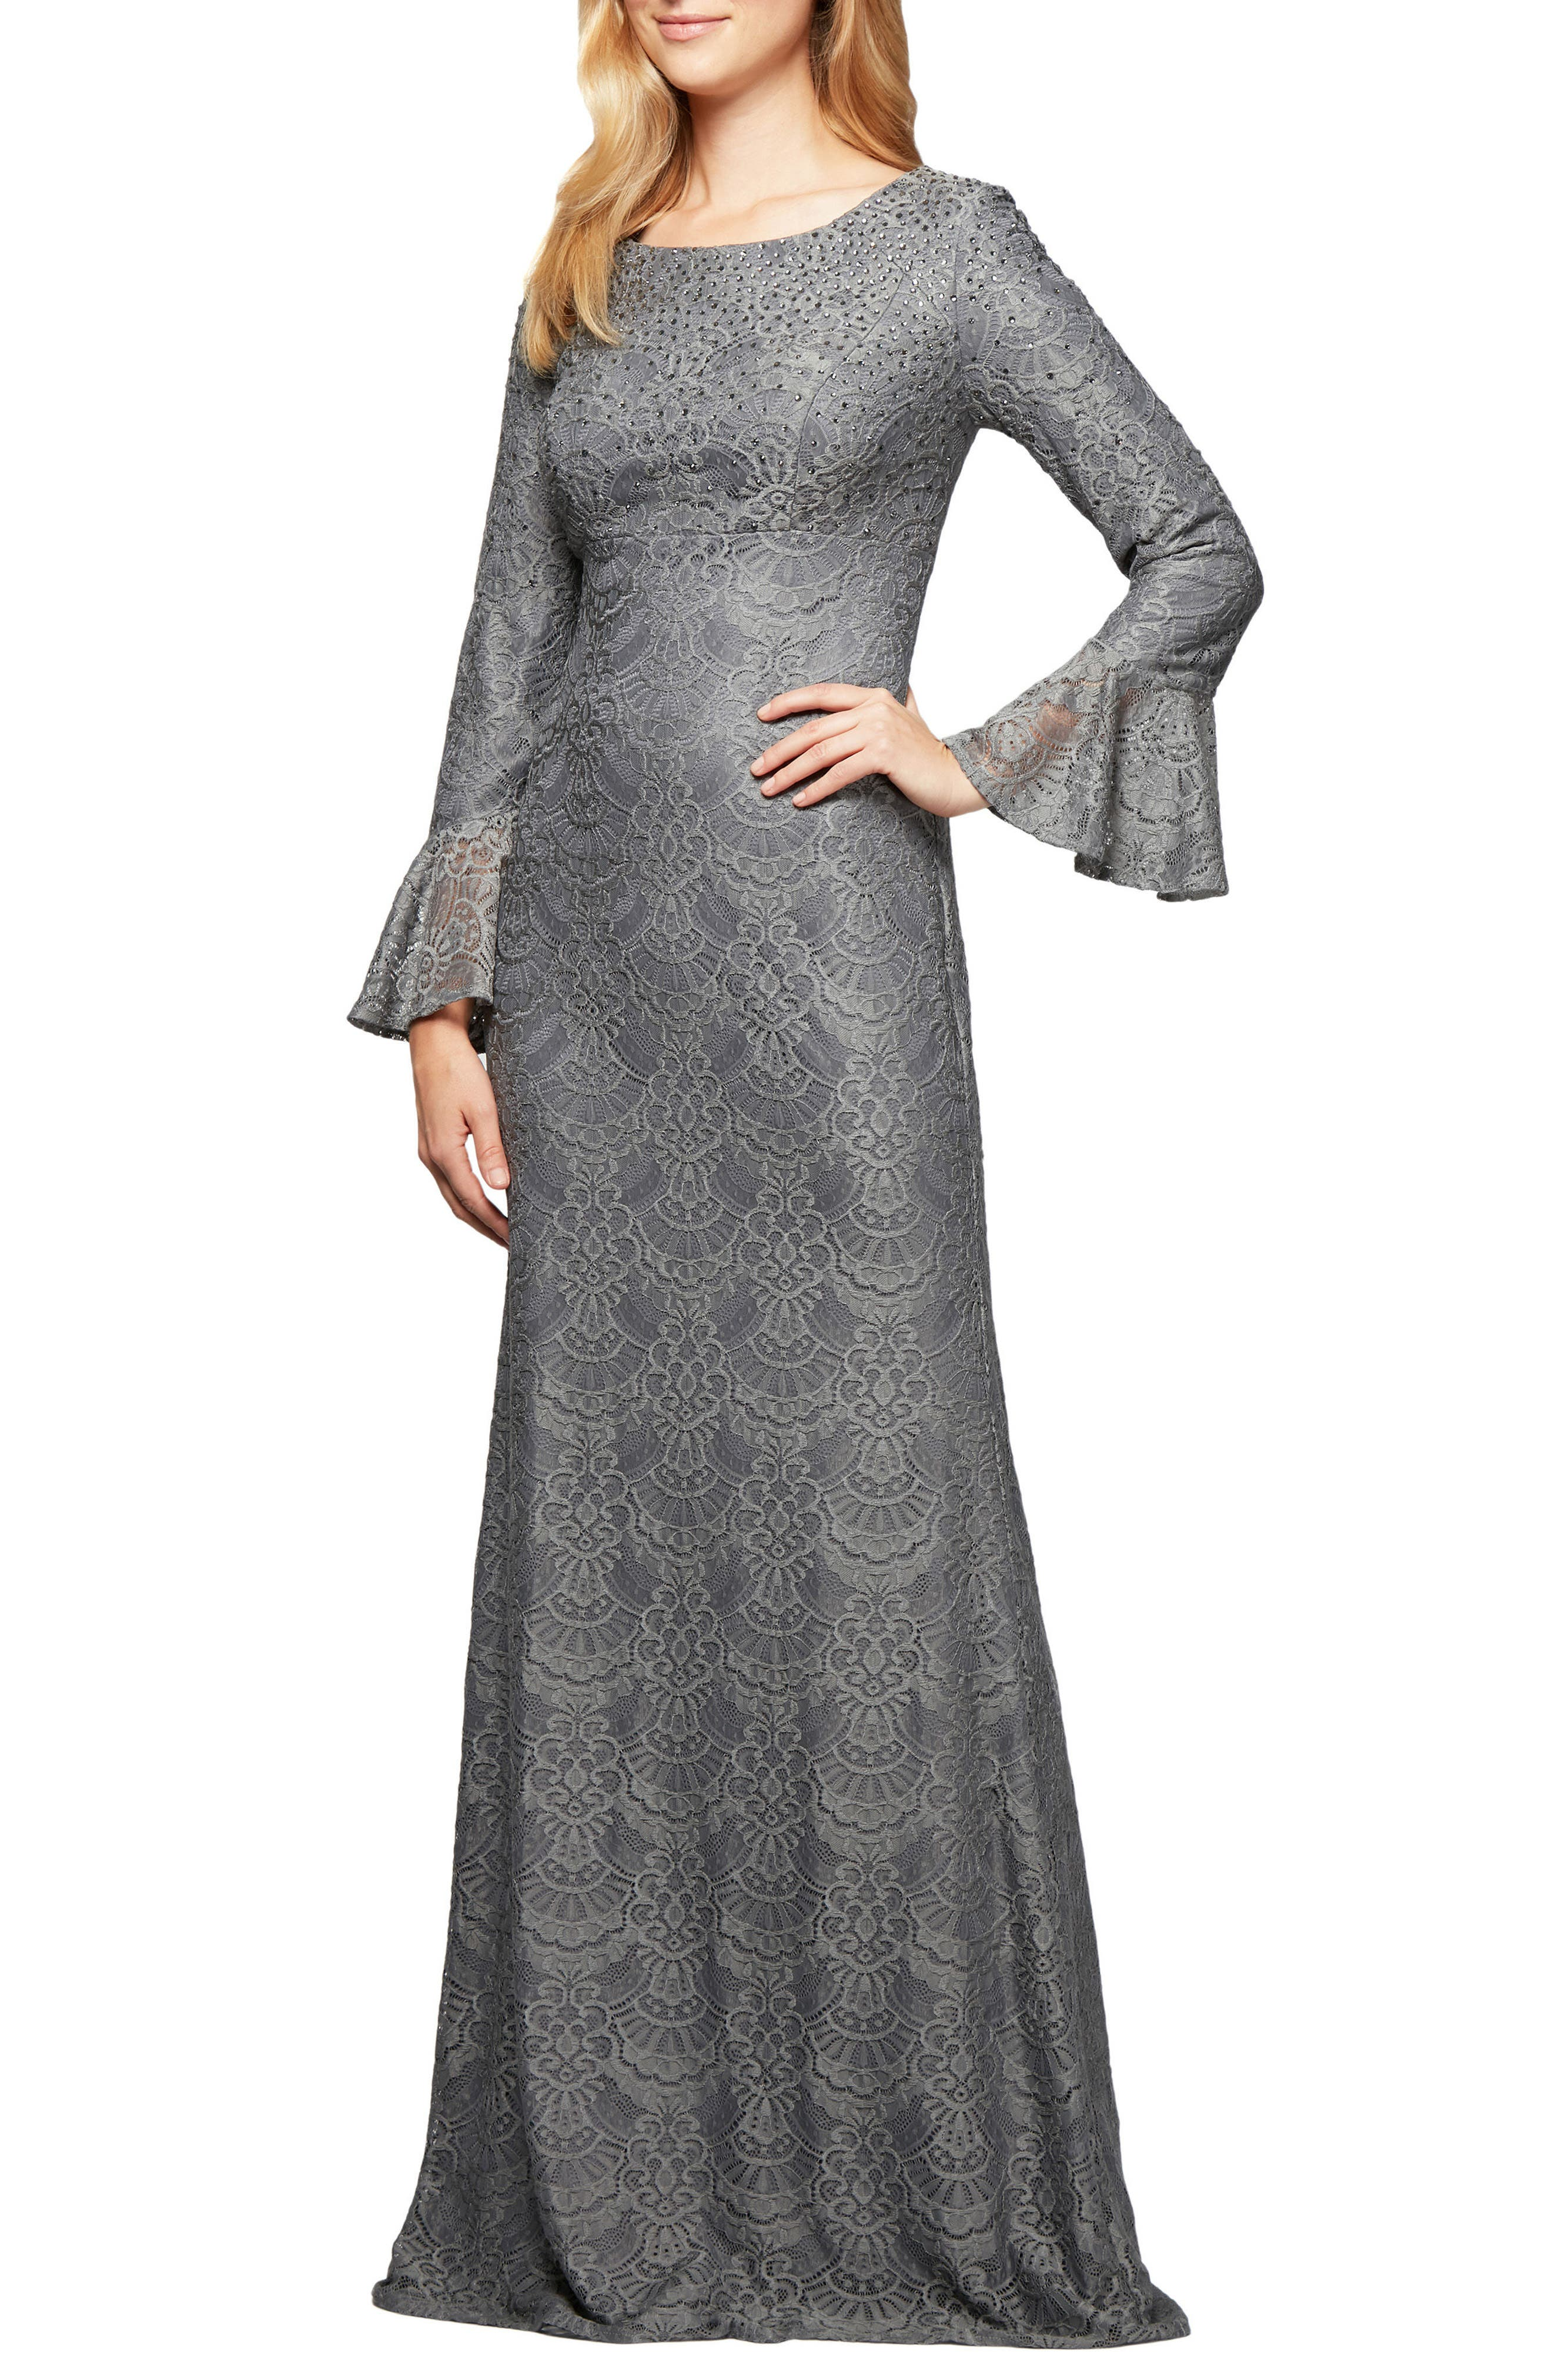 Alternate Image 1 Selected - Alex Evenings Sequined Lace Gown